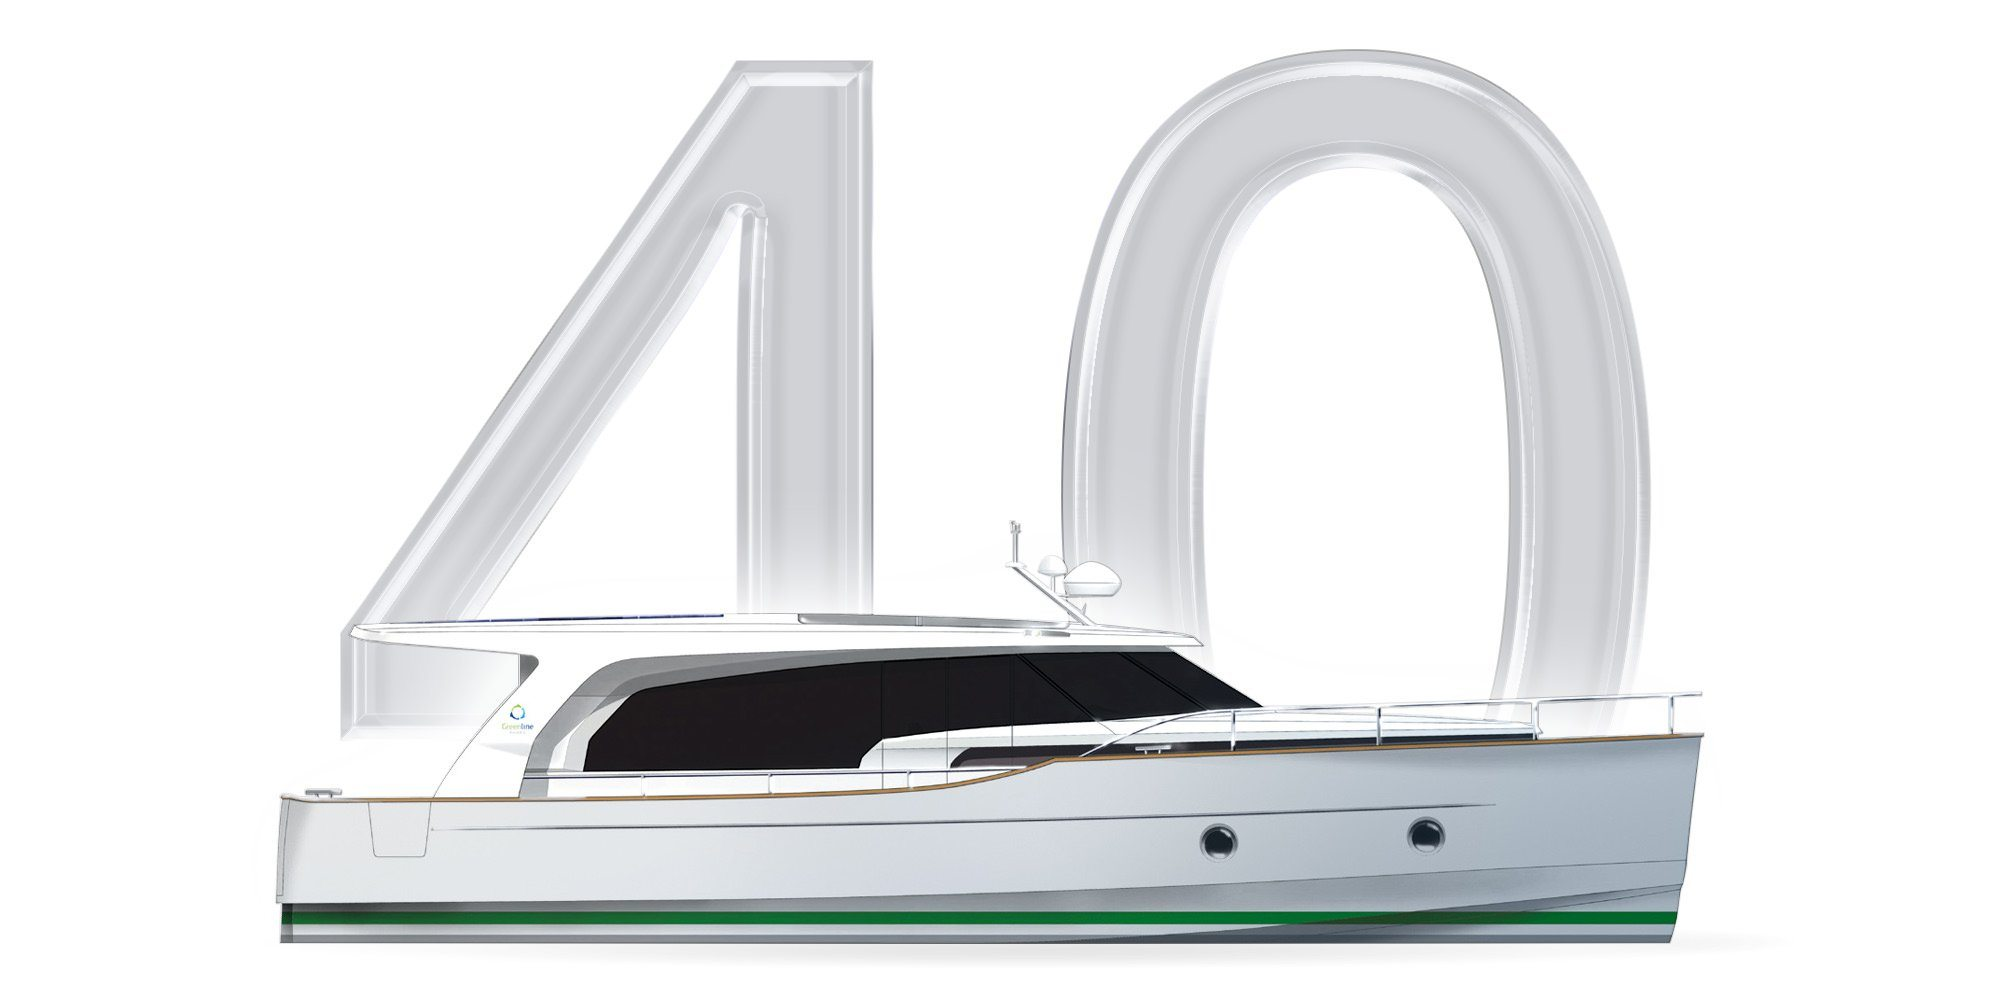 A classic Motor Yacht. You see a Thumbnail with the number 40 and a graphically represented Yacht of the Greenline Class 40. A Slider over the thumbnail shows the following information about the Greenline 40: Length overall: 11,99m Beam overall: 4,25m Base Price: 259.900,00€